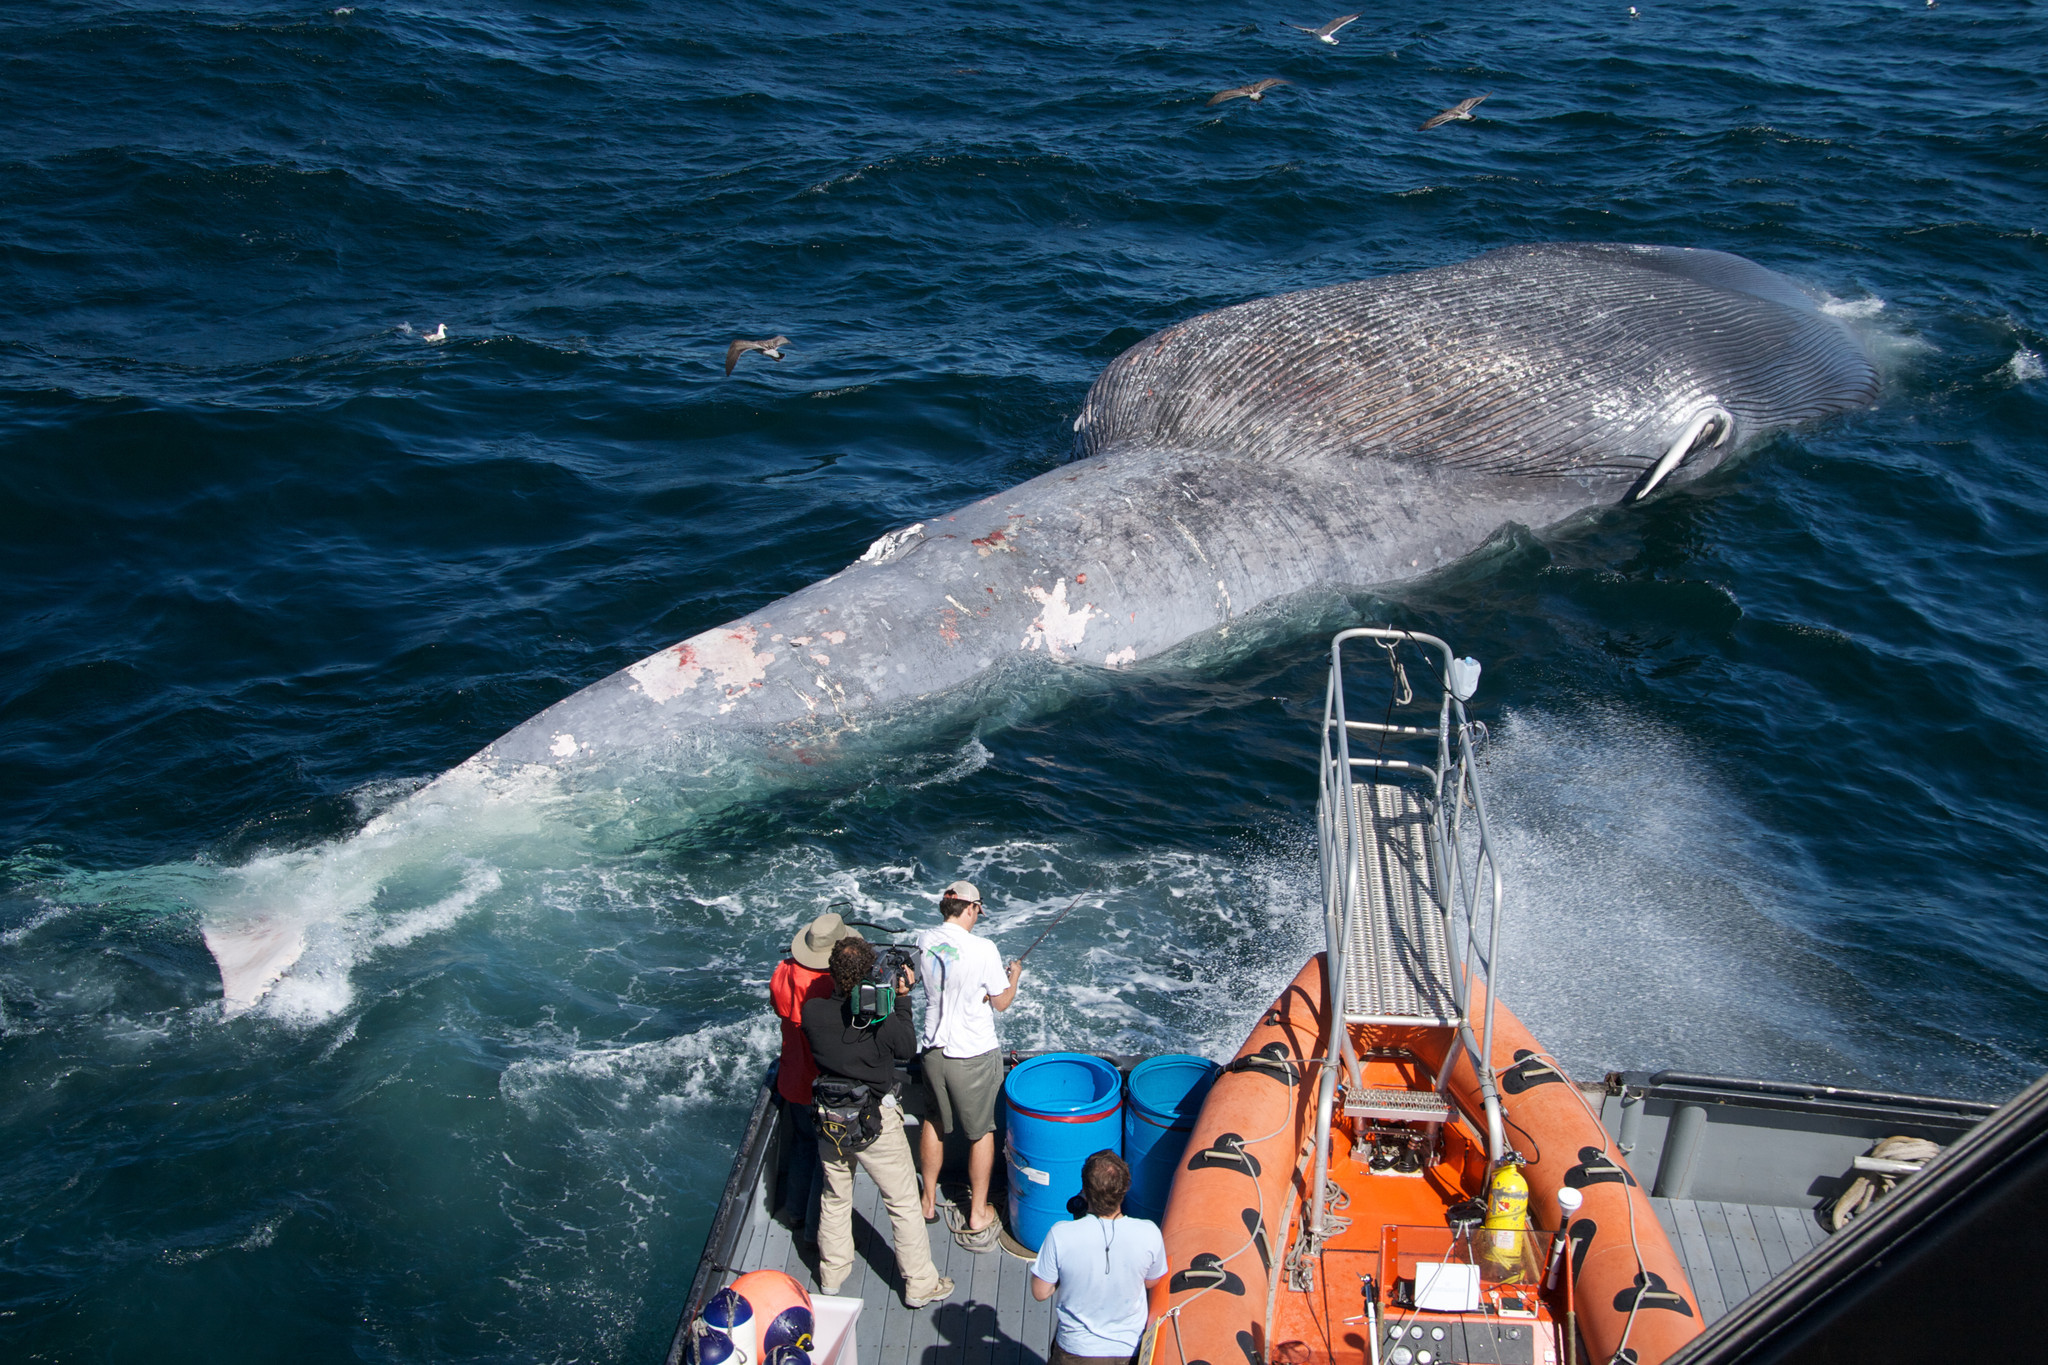 Ships and blue whales on a collision course off California coast